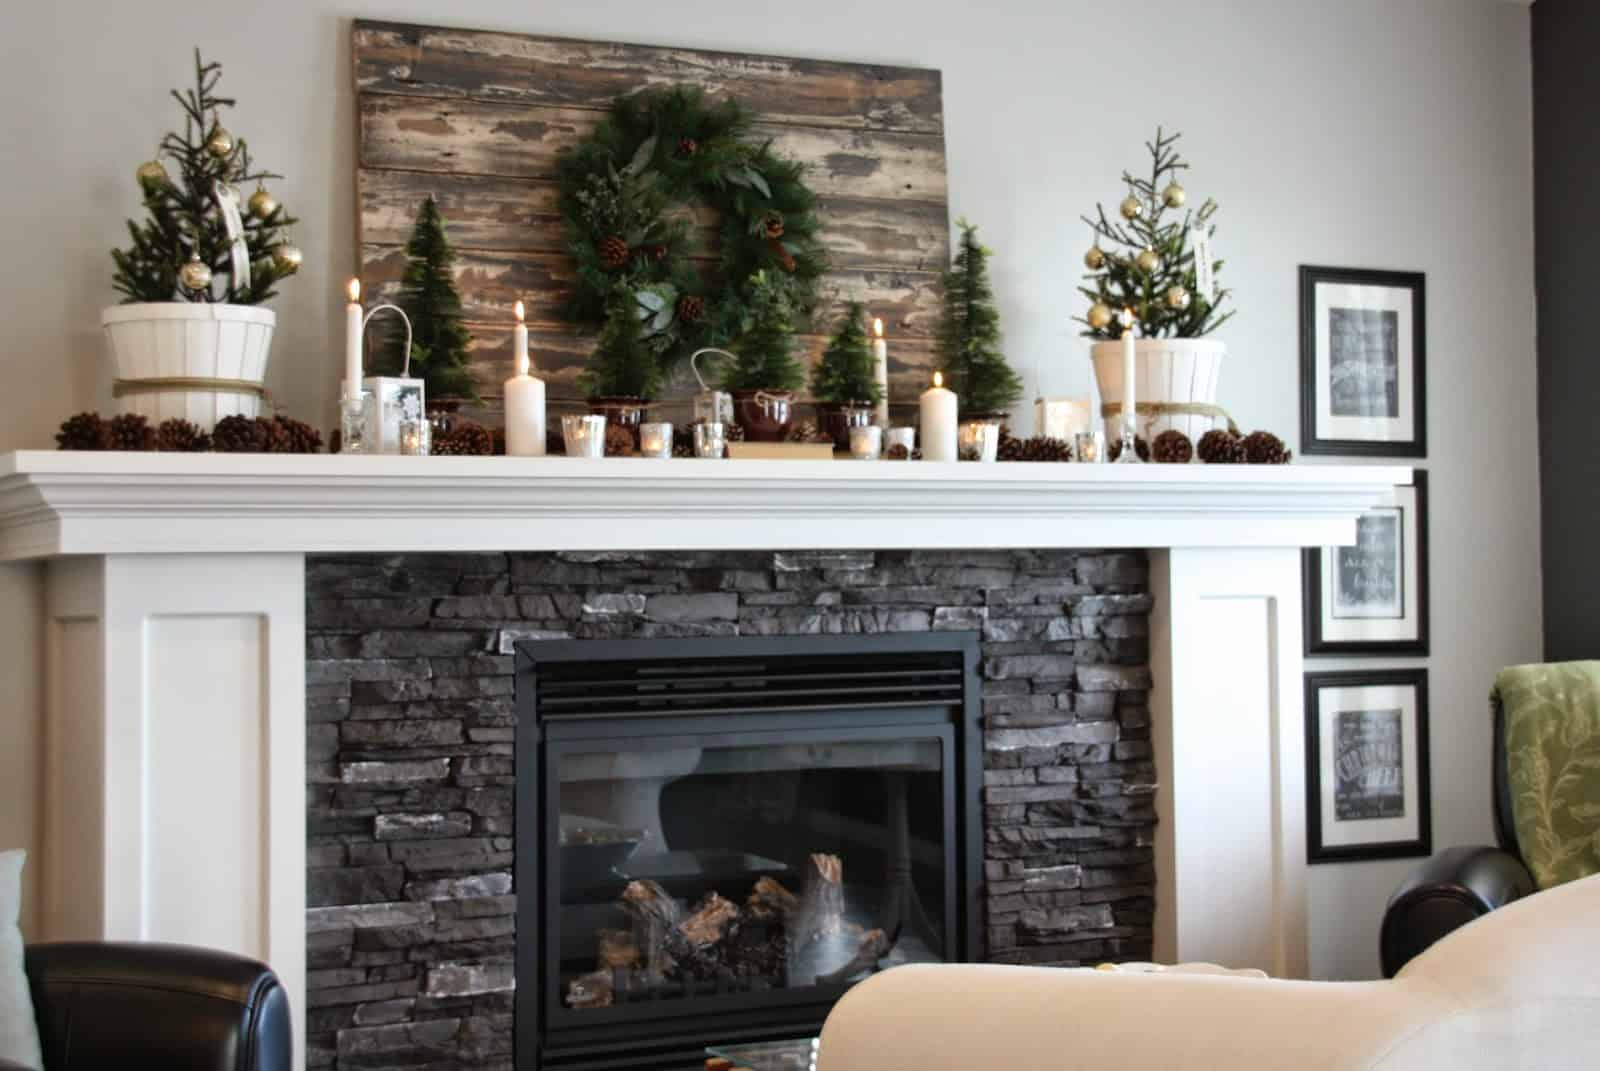 refined and simple mantel How To Bring Christmas Cheer To Your Mantel